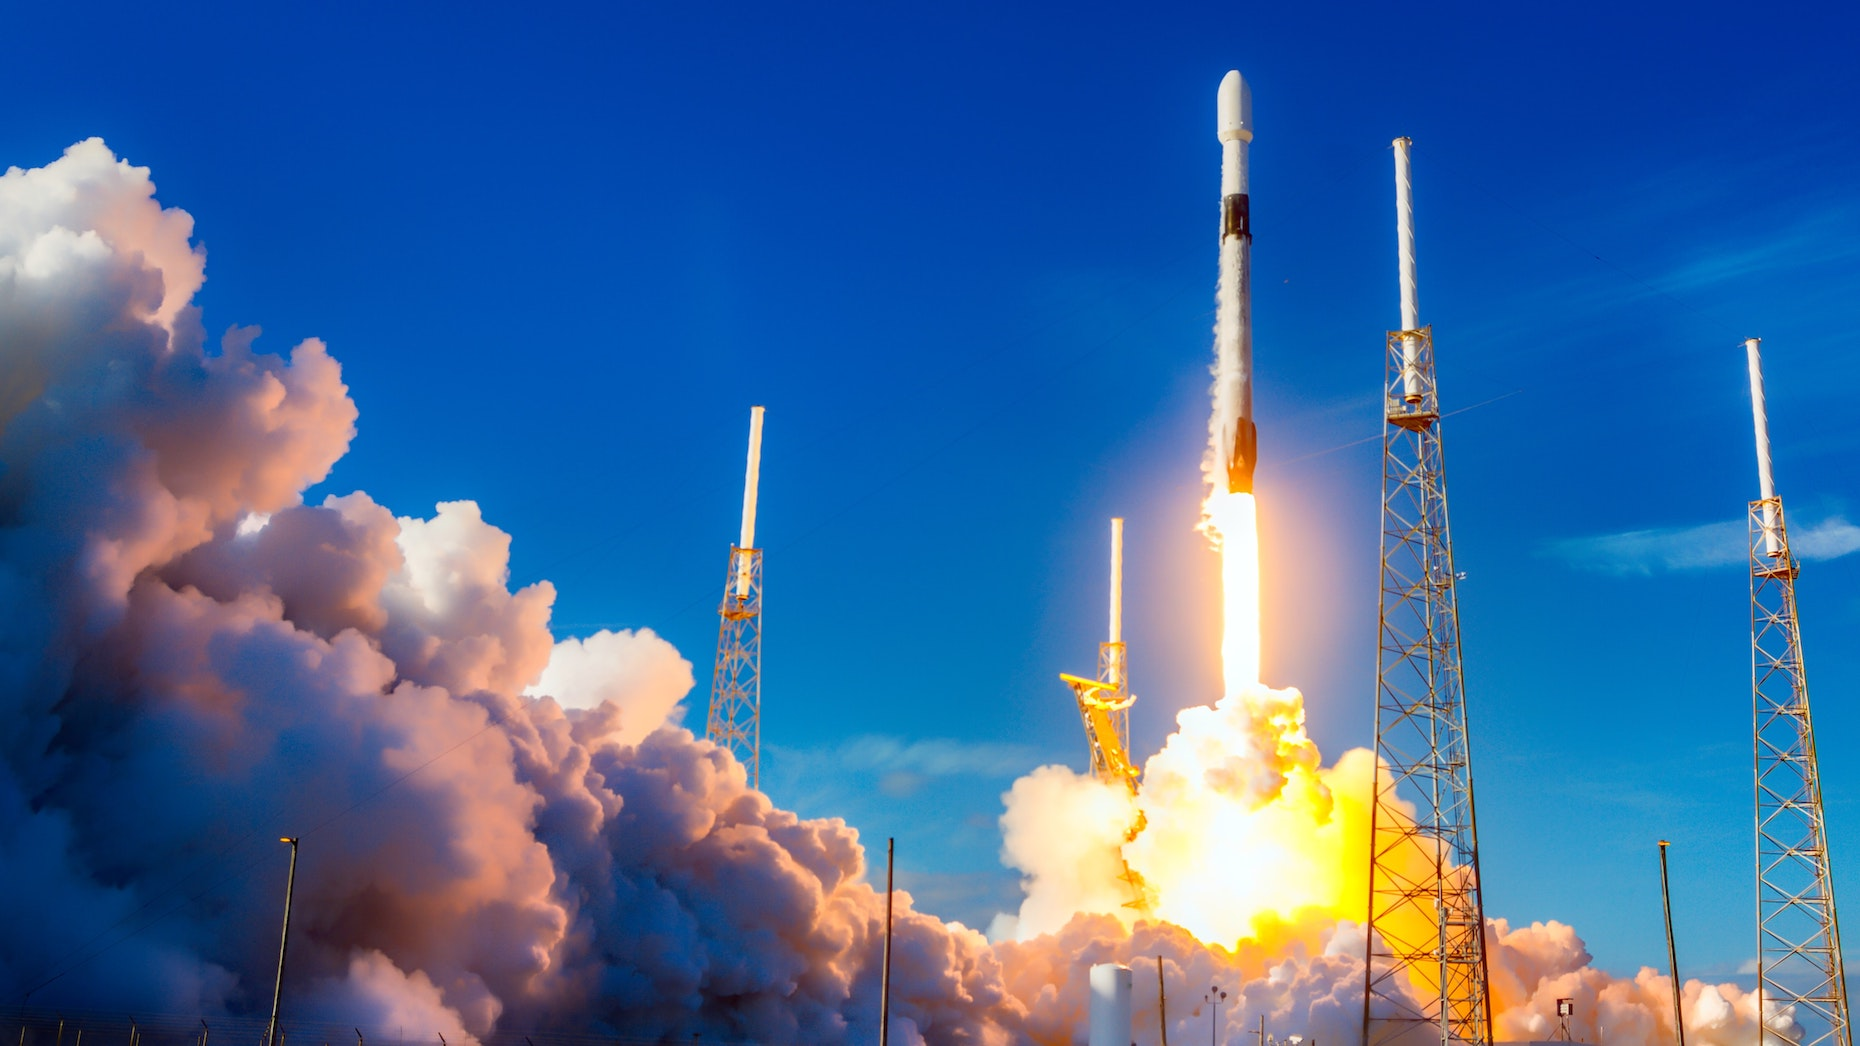 Quicken Loans files for IPO as Rocket Companies